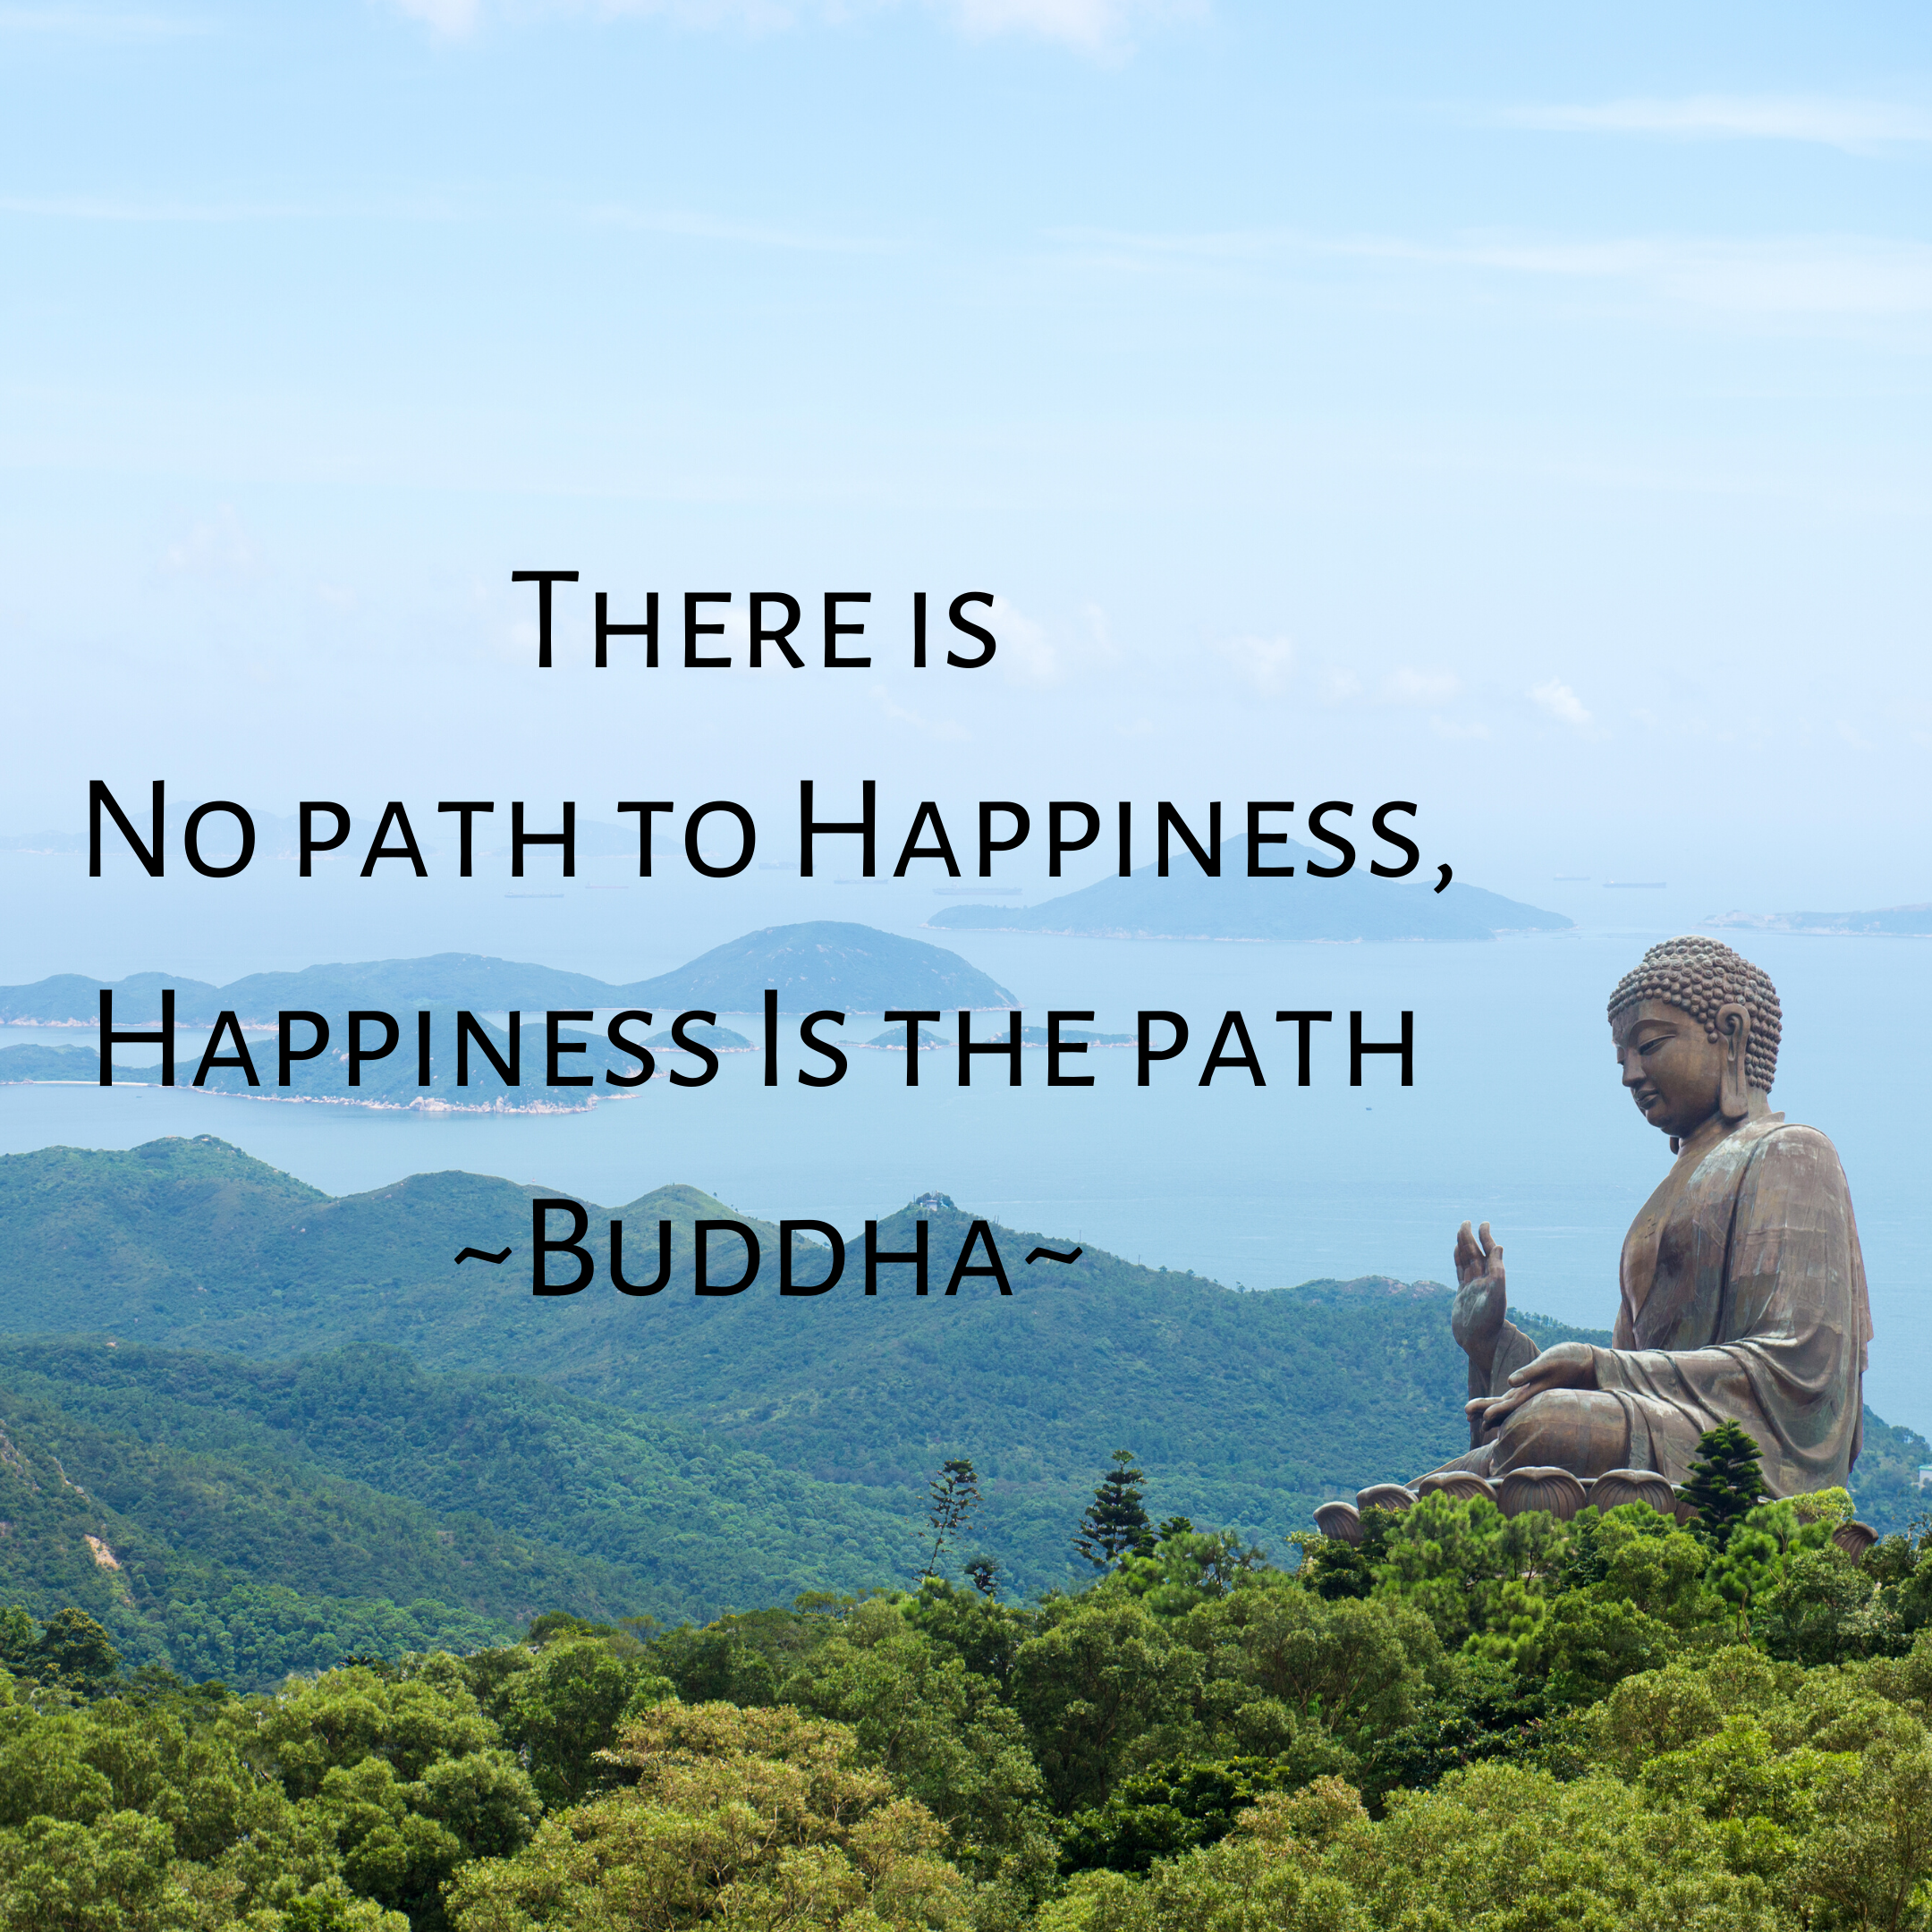 the-is-no-path-to-happiness-happiness-is-the-path-buddha-mindfulness-tips-with-good-looks-bible-glb-be-jehan-mir